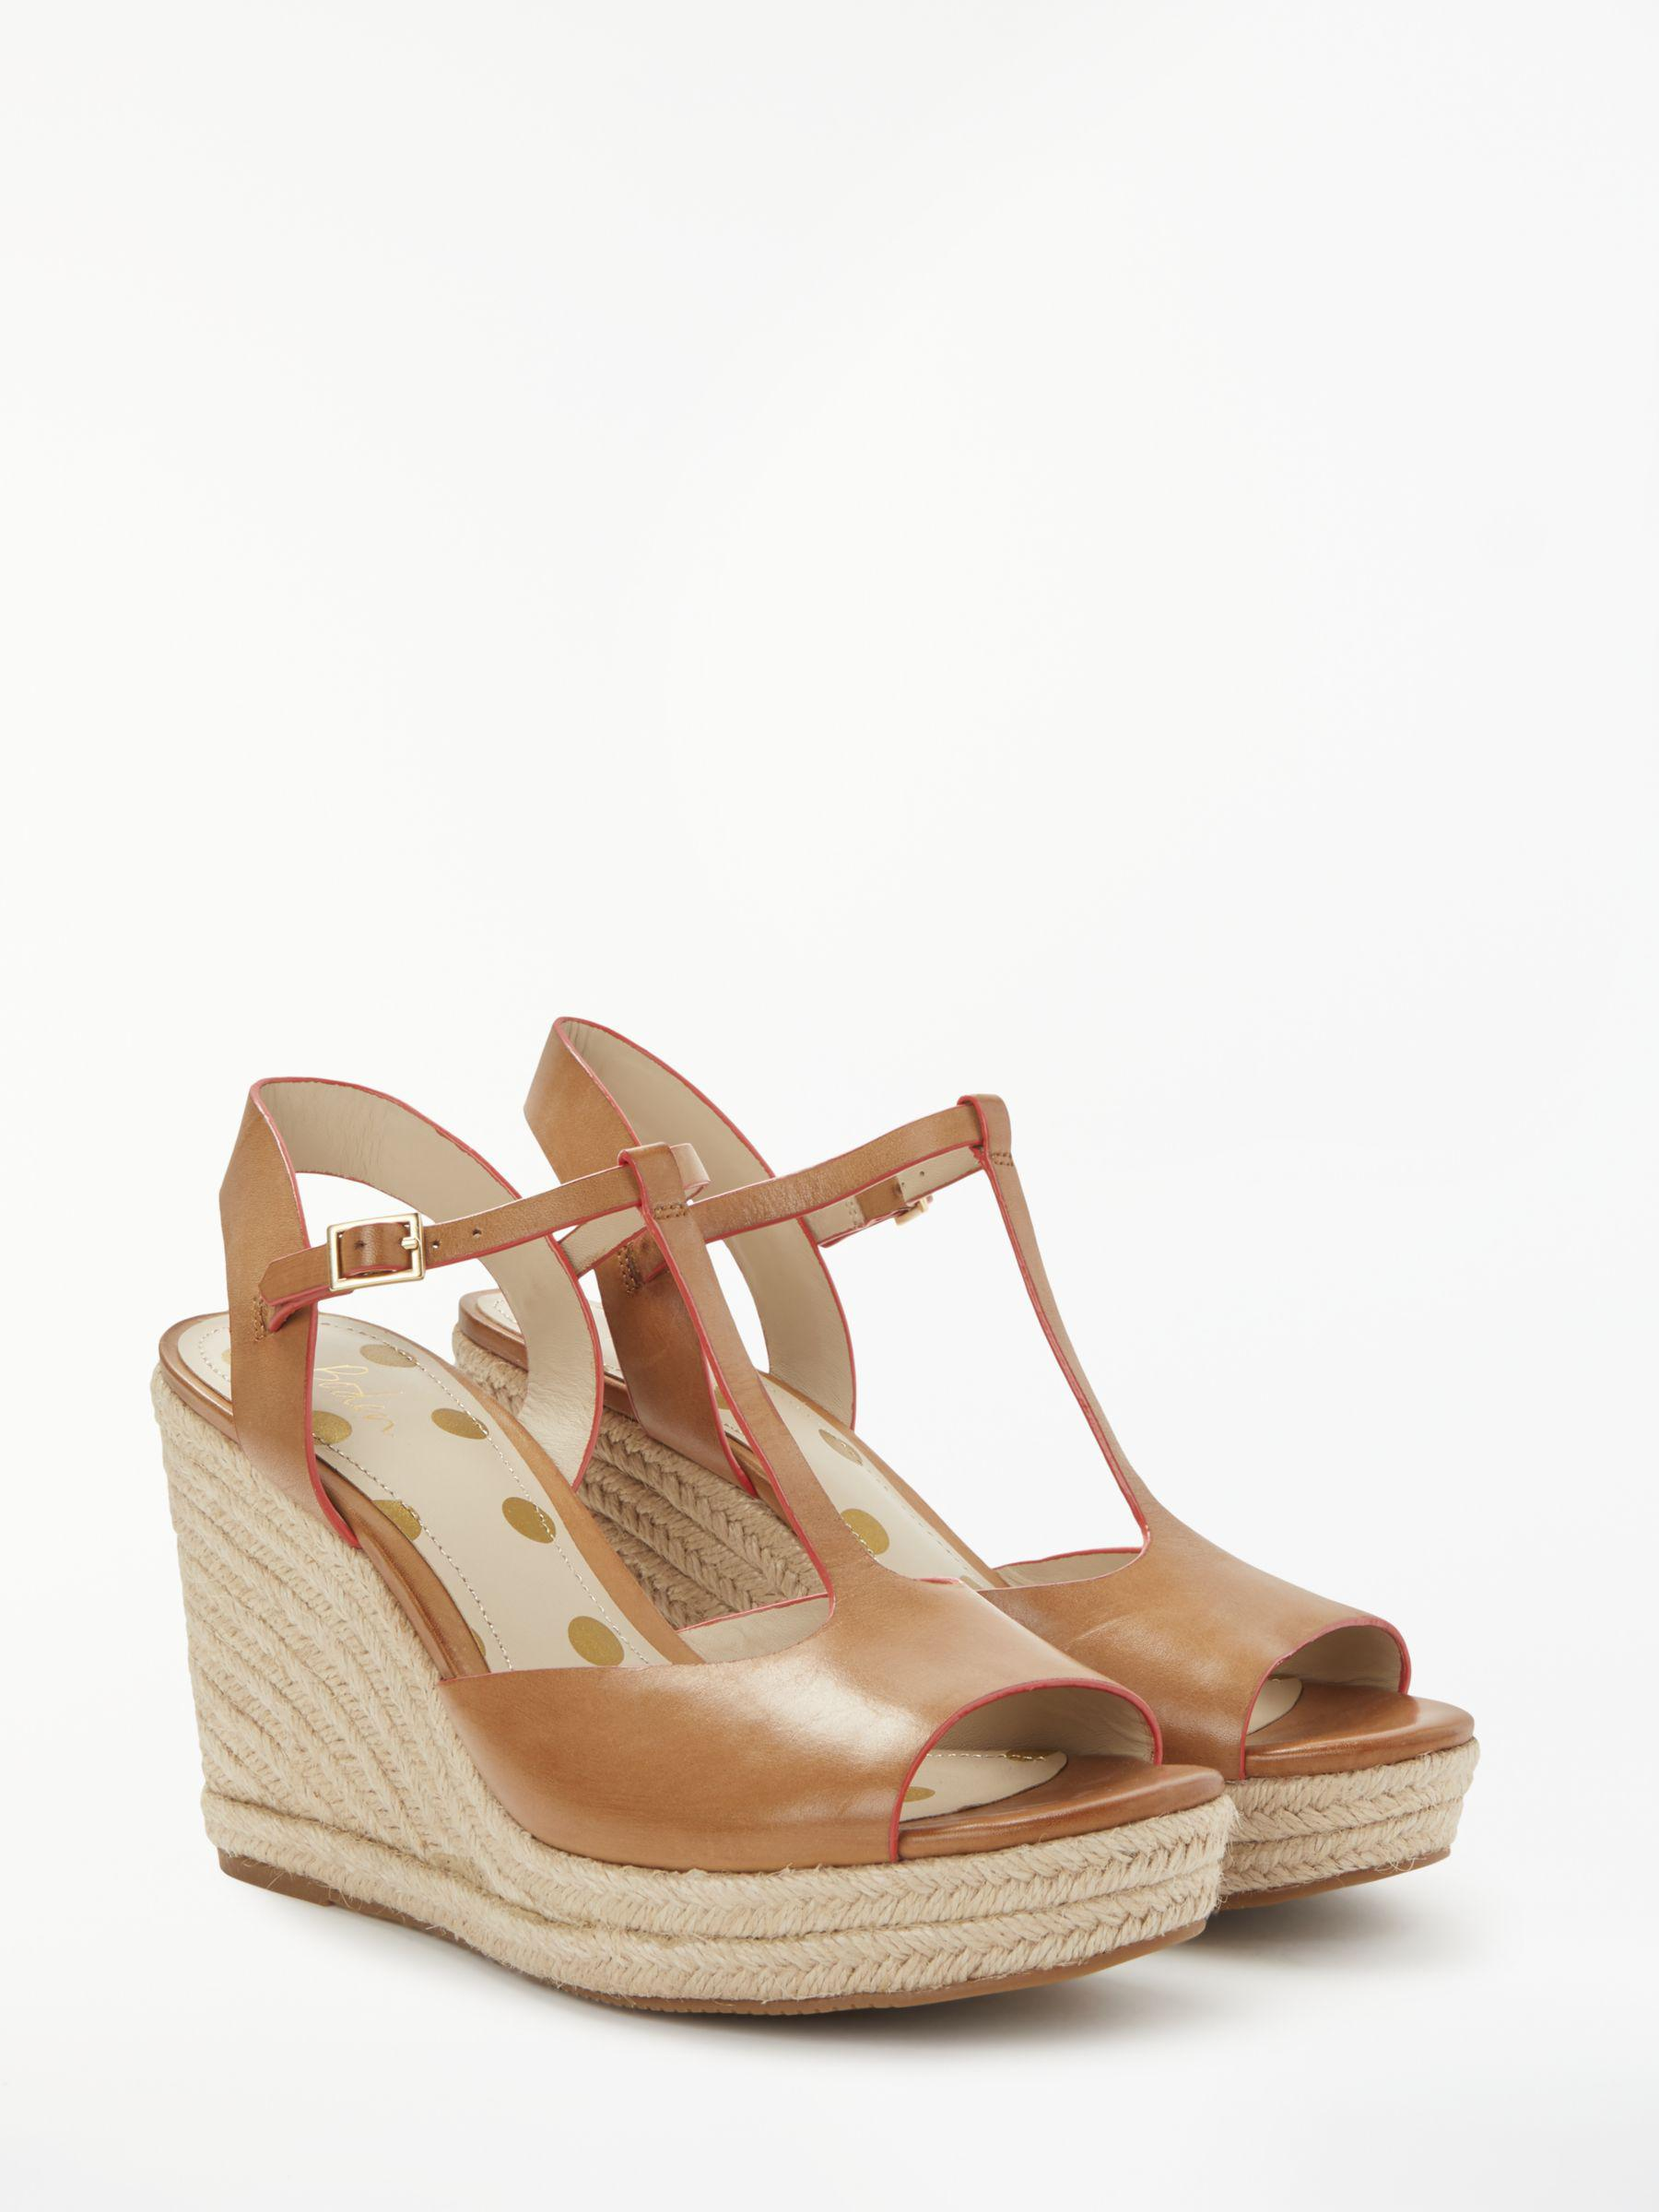 326e0fd3091 Boden Carrie Espadrille Wedge Heel Sandals in Brown - Lyst